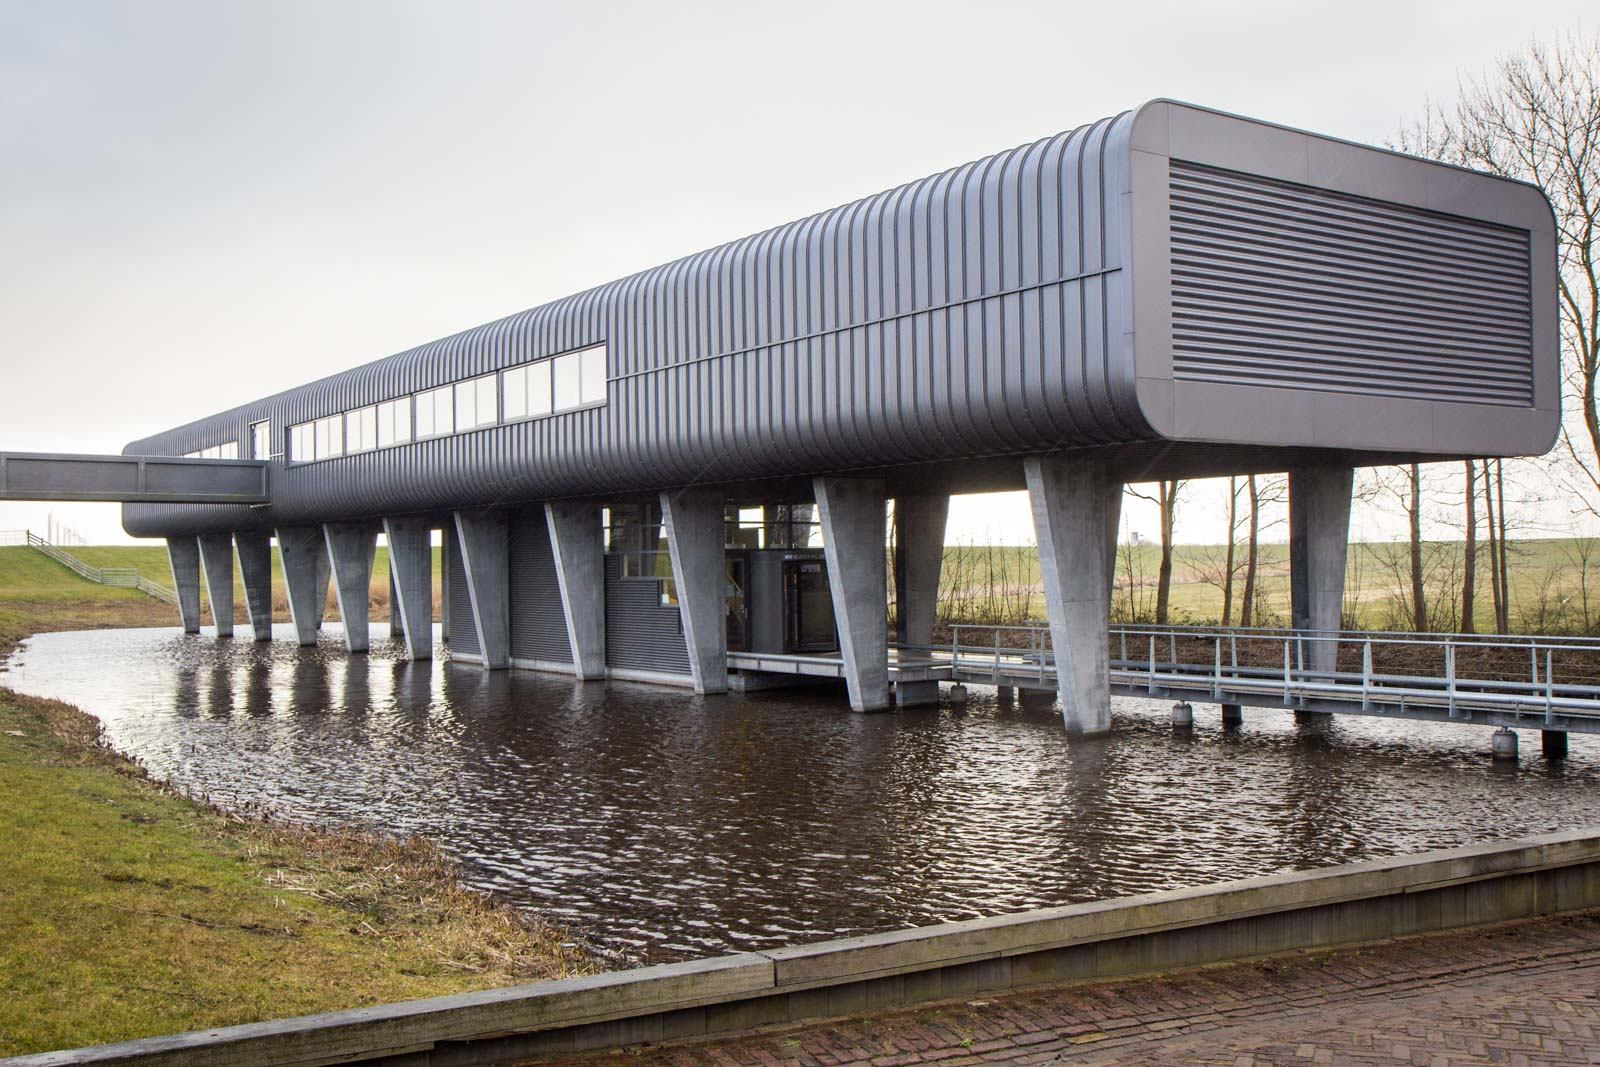 D.F. Wouda Steam Pumping Station, Lemmer, The Netherlands